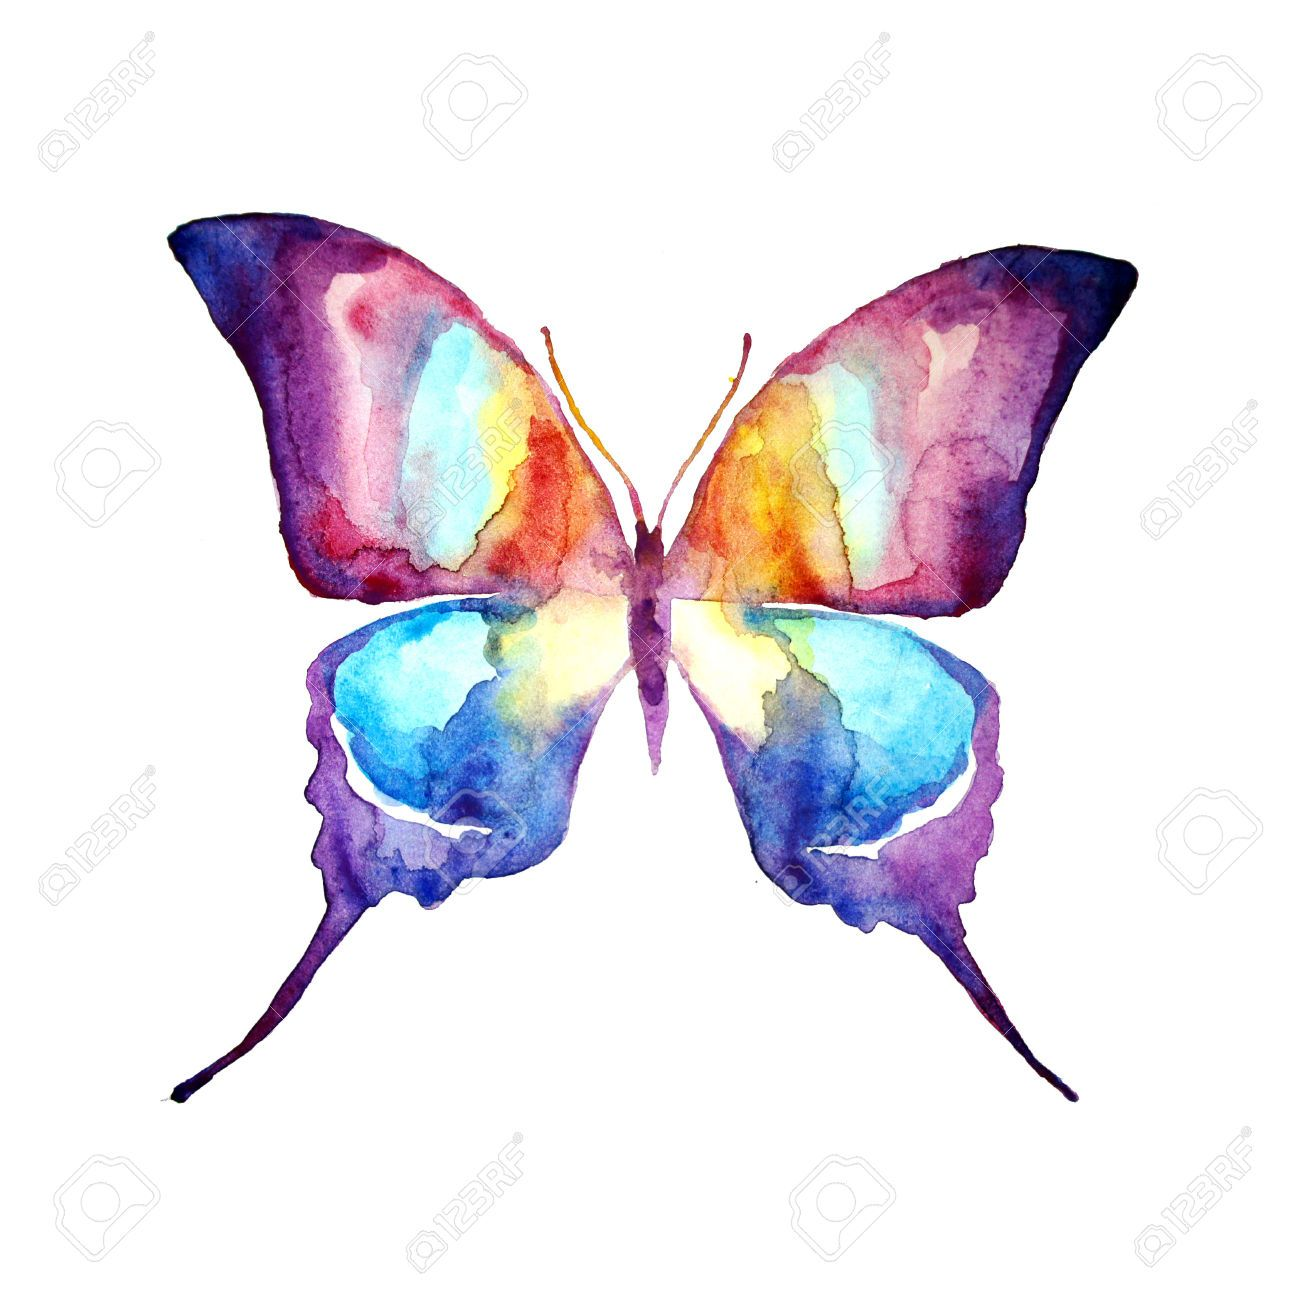 Free illustration watercolor pigment color free image - Butterfly Watercolor Design Stock Photo Picture And Royalty Free Image Image 24016921